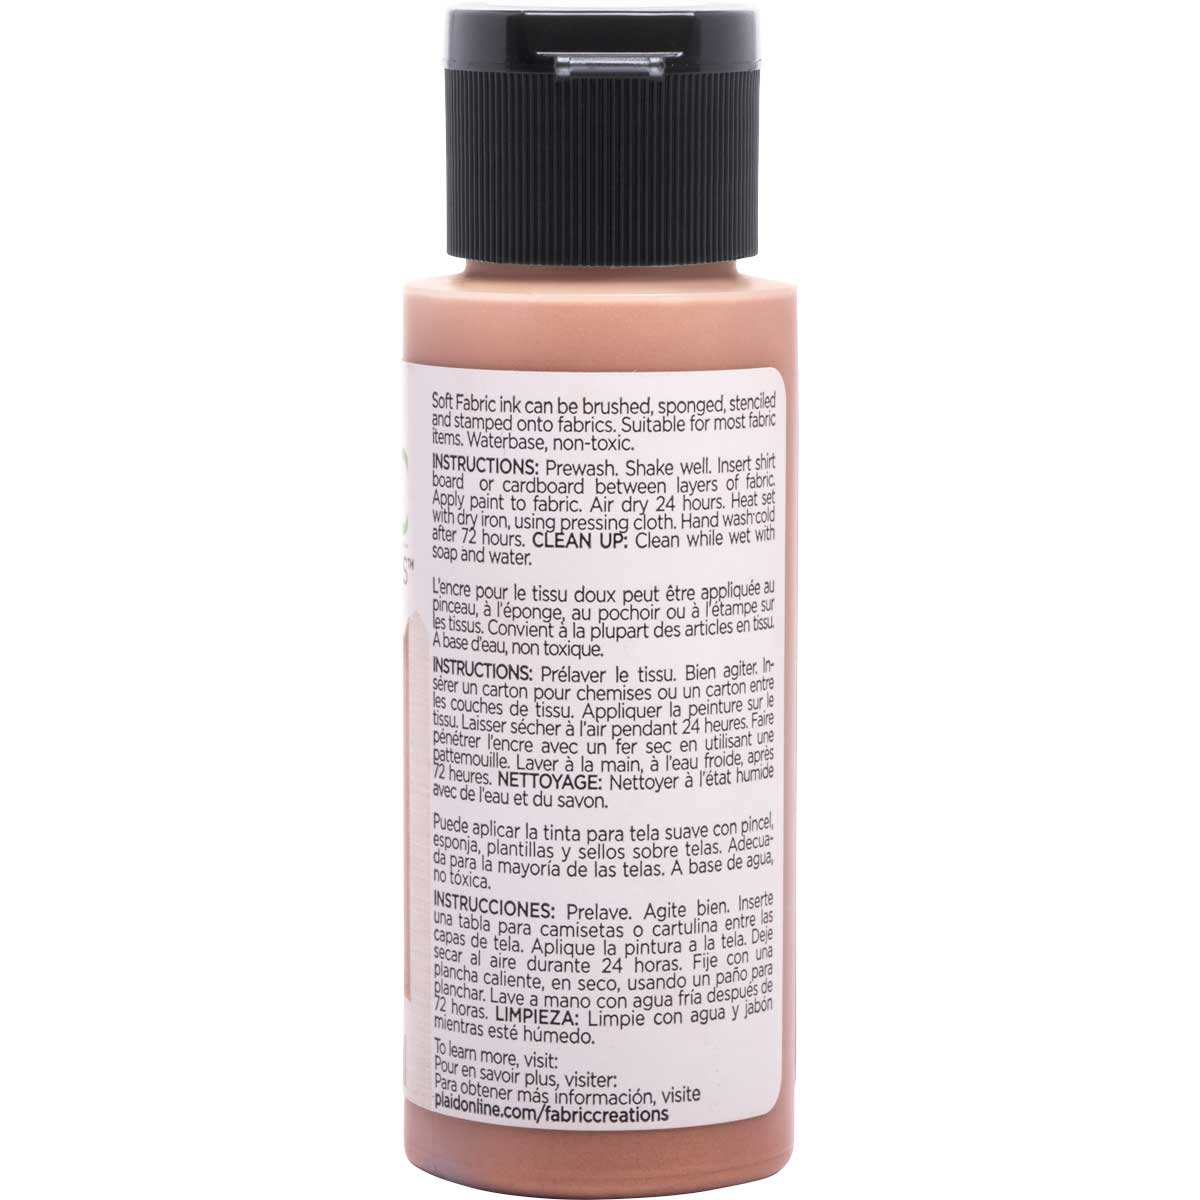 Fabric Creations™ Soft Fabric Inks - Metallic Rose Gold, 2 oz. - 26292